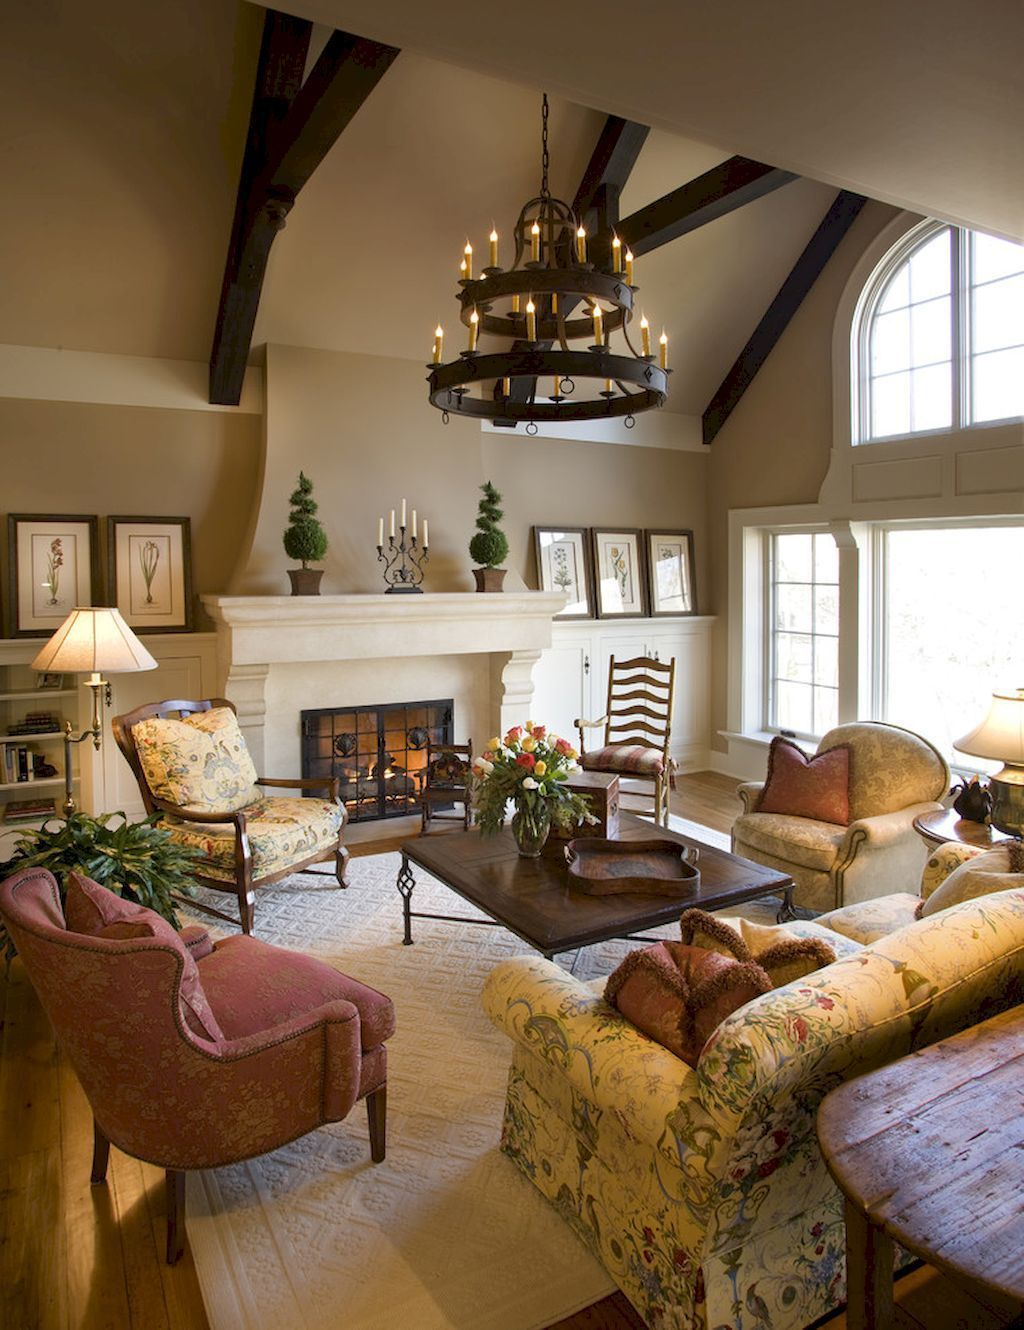 Beautiful French Country Living Room Ideas 8 In 2020 French Country Living Room French Country Decorating Living Room Country Living Room